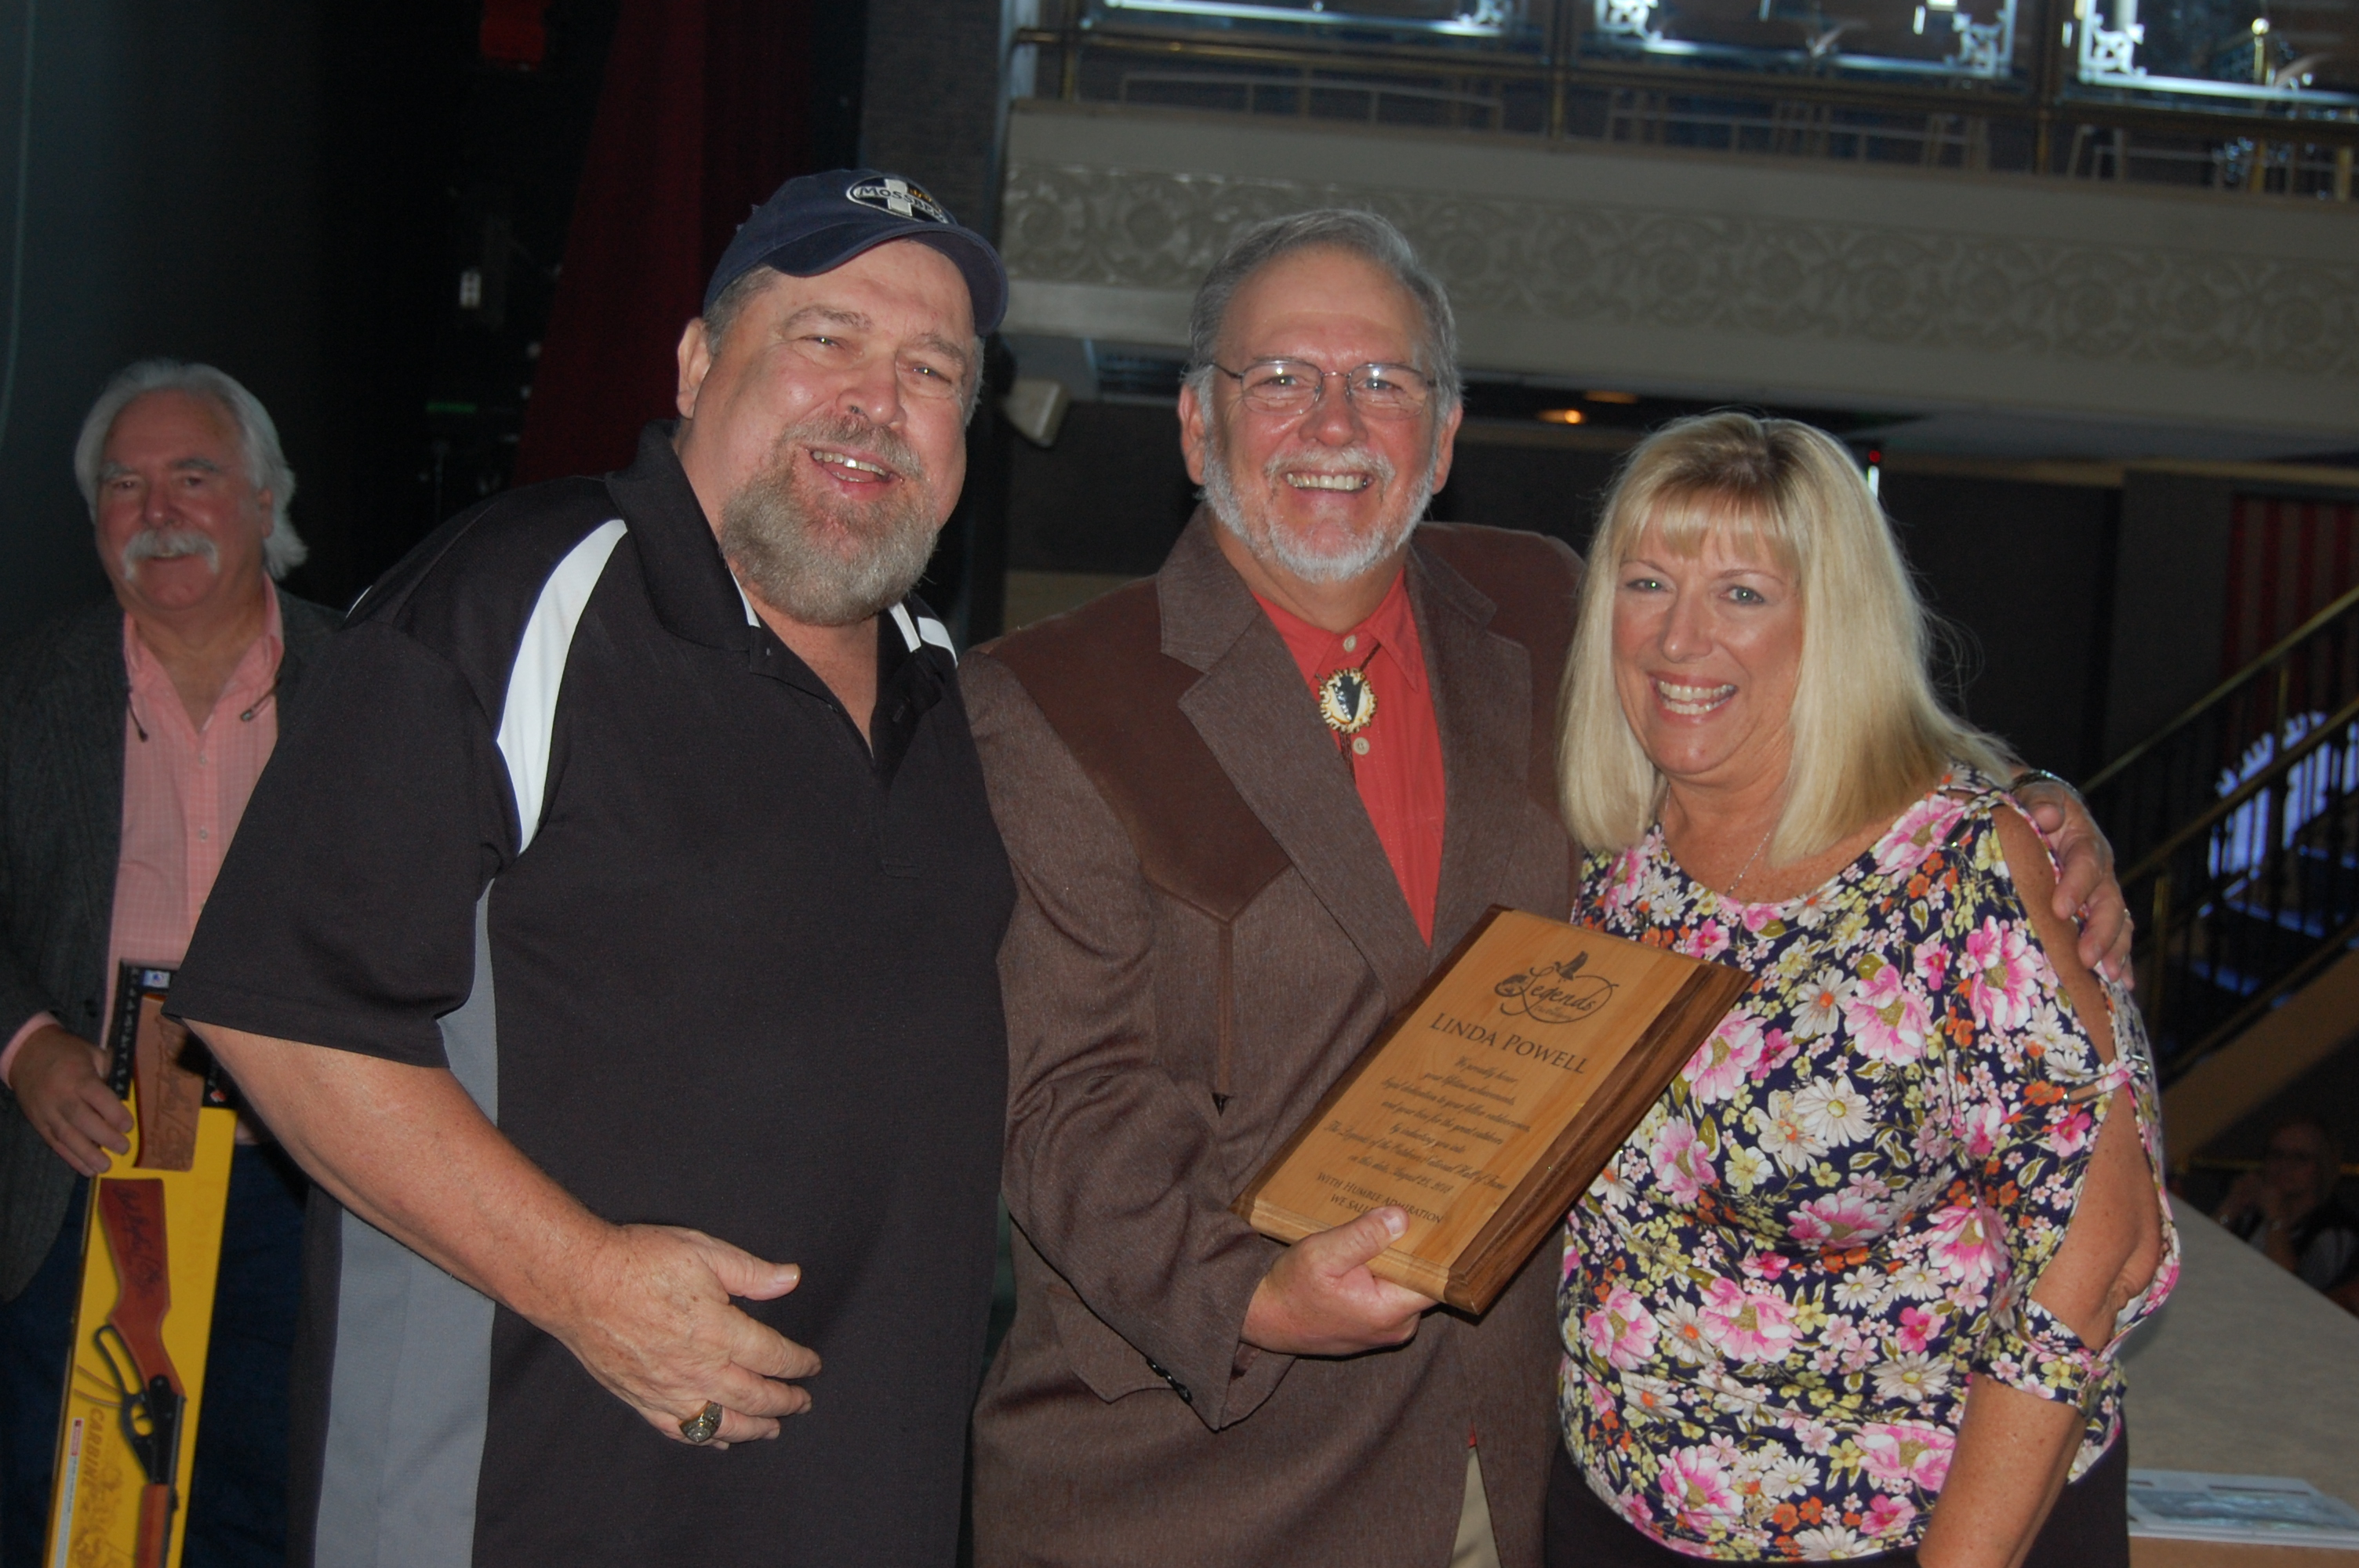 Left to right:  Ray Eye and Garry Mason welcome Linda Powell into the Legends of the Outdoors Hall of Fame